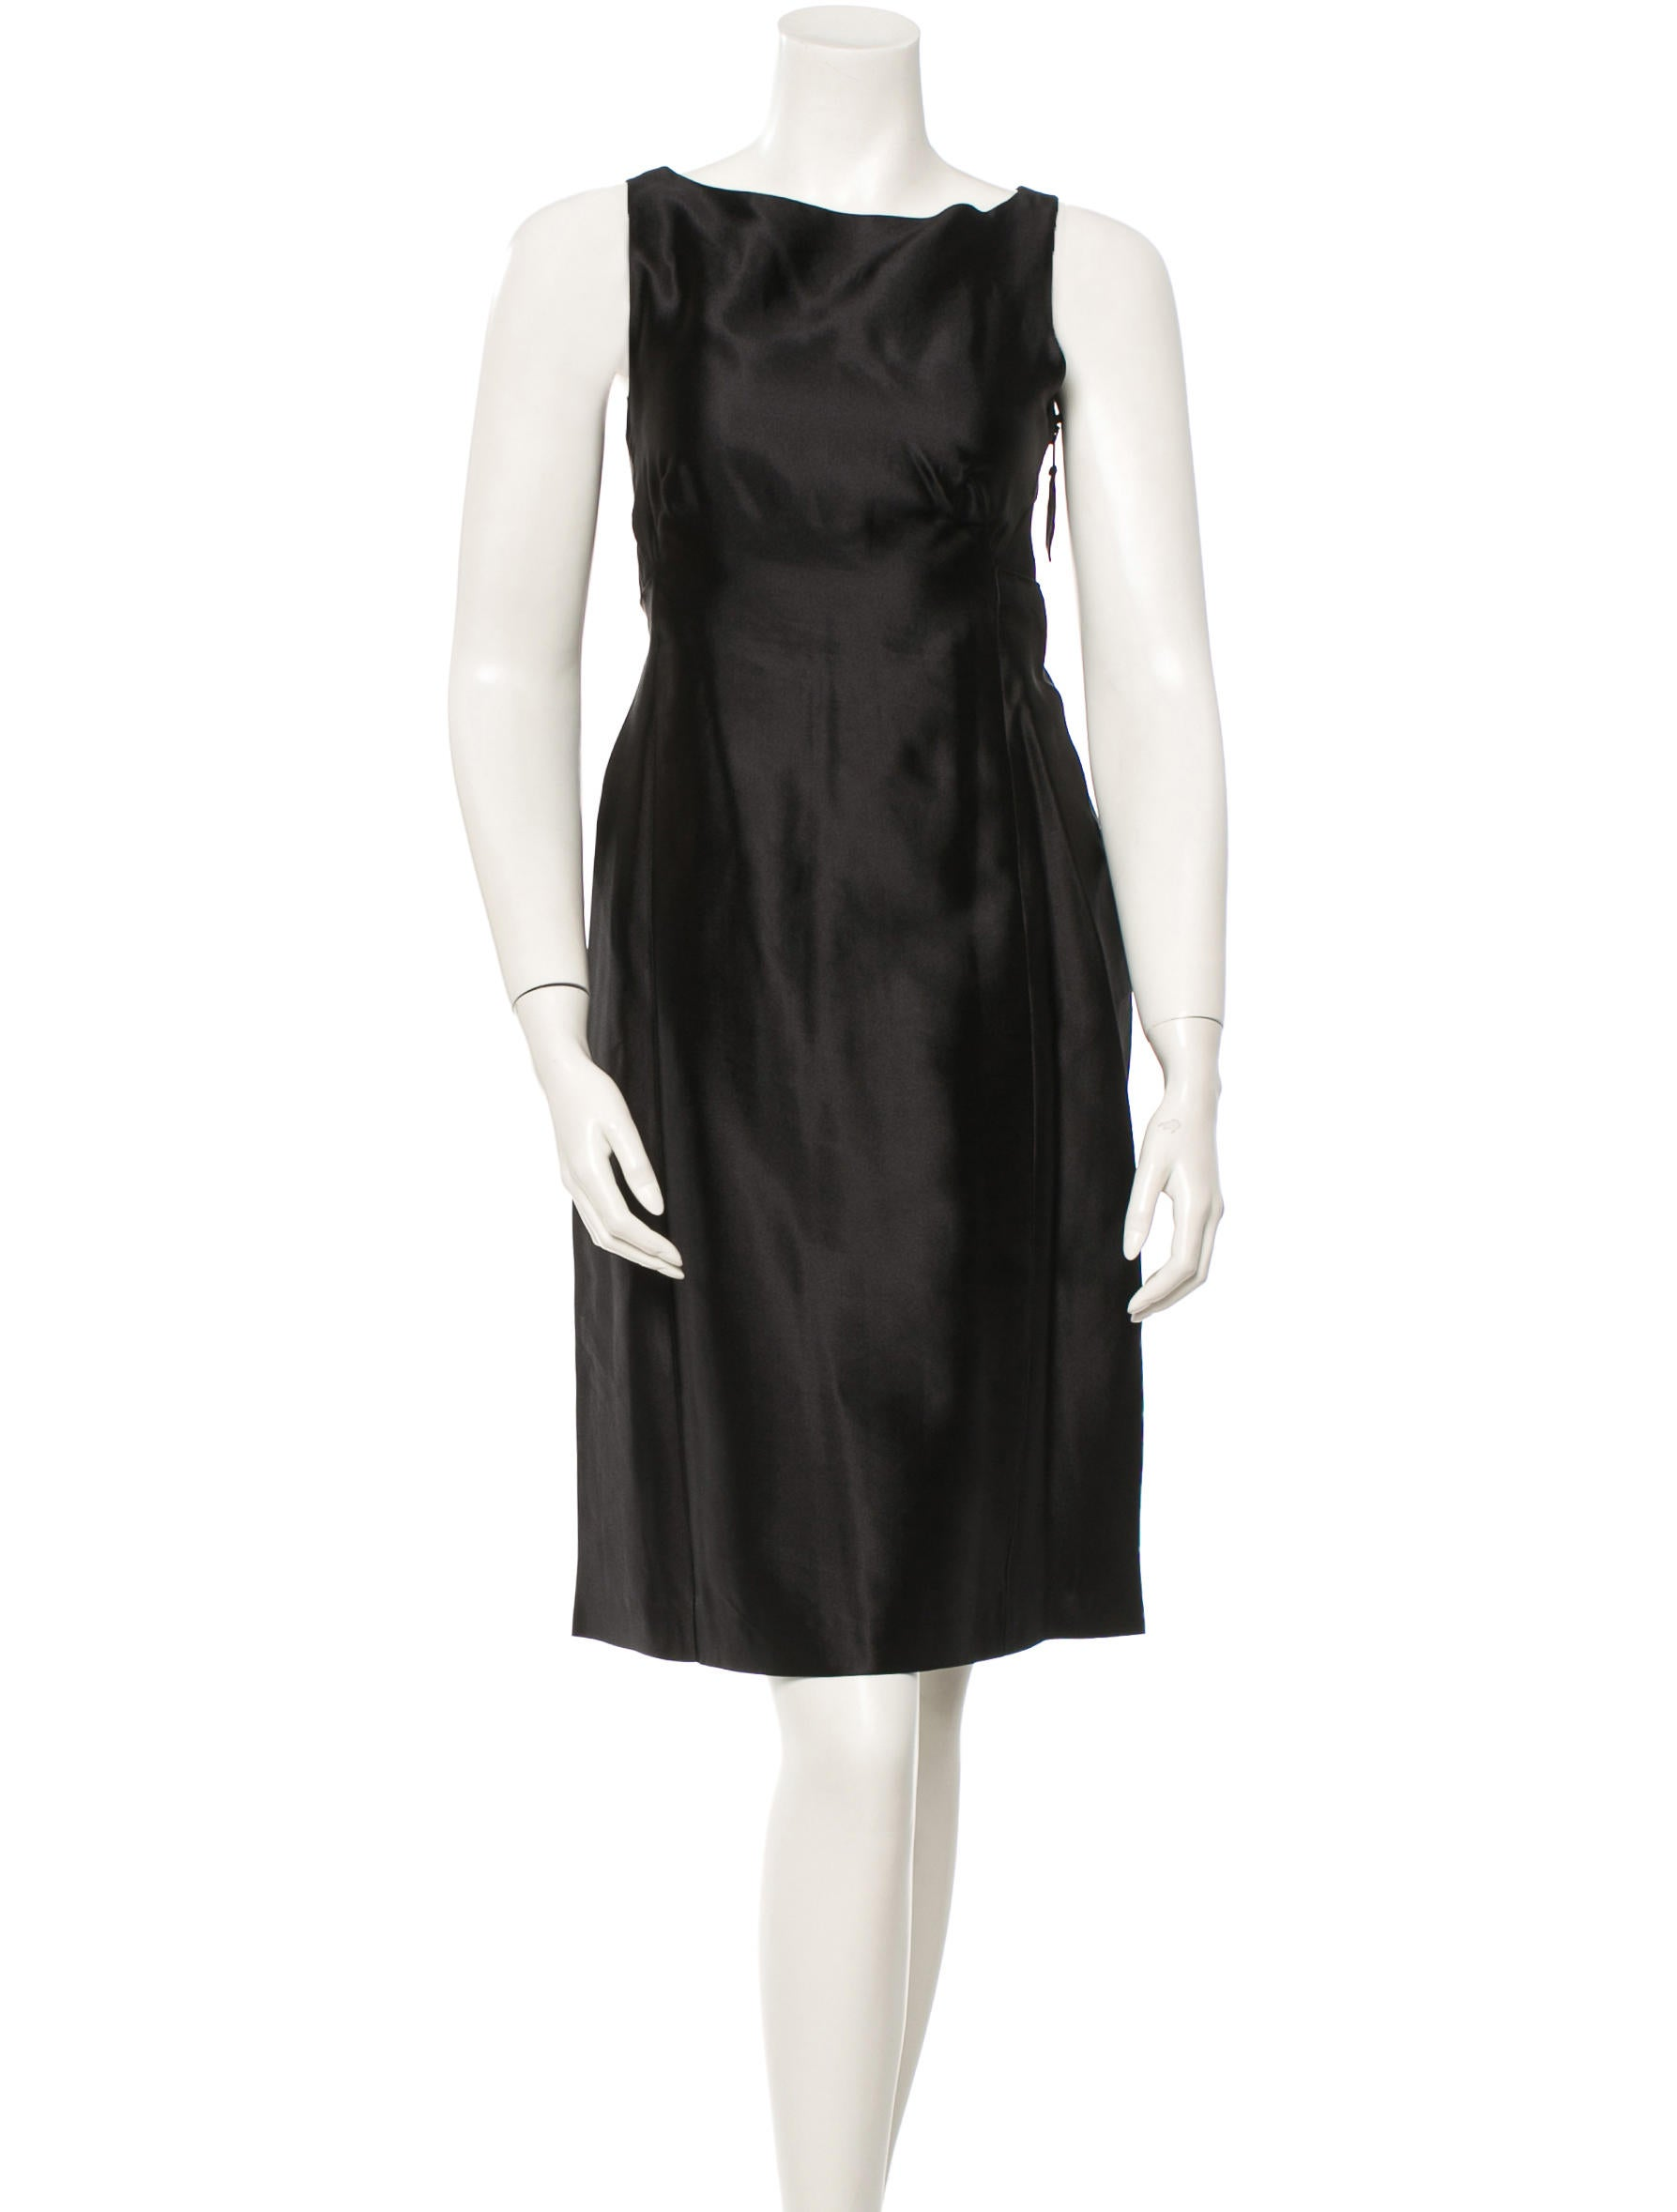 moschino dress clothing mos21644 the realreal